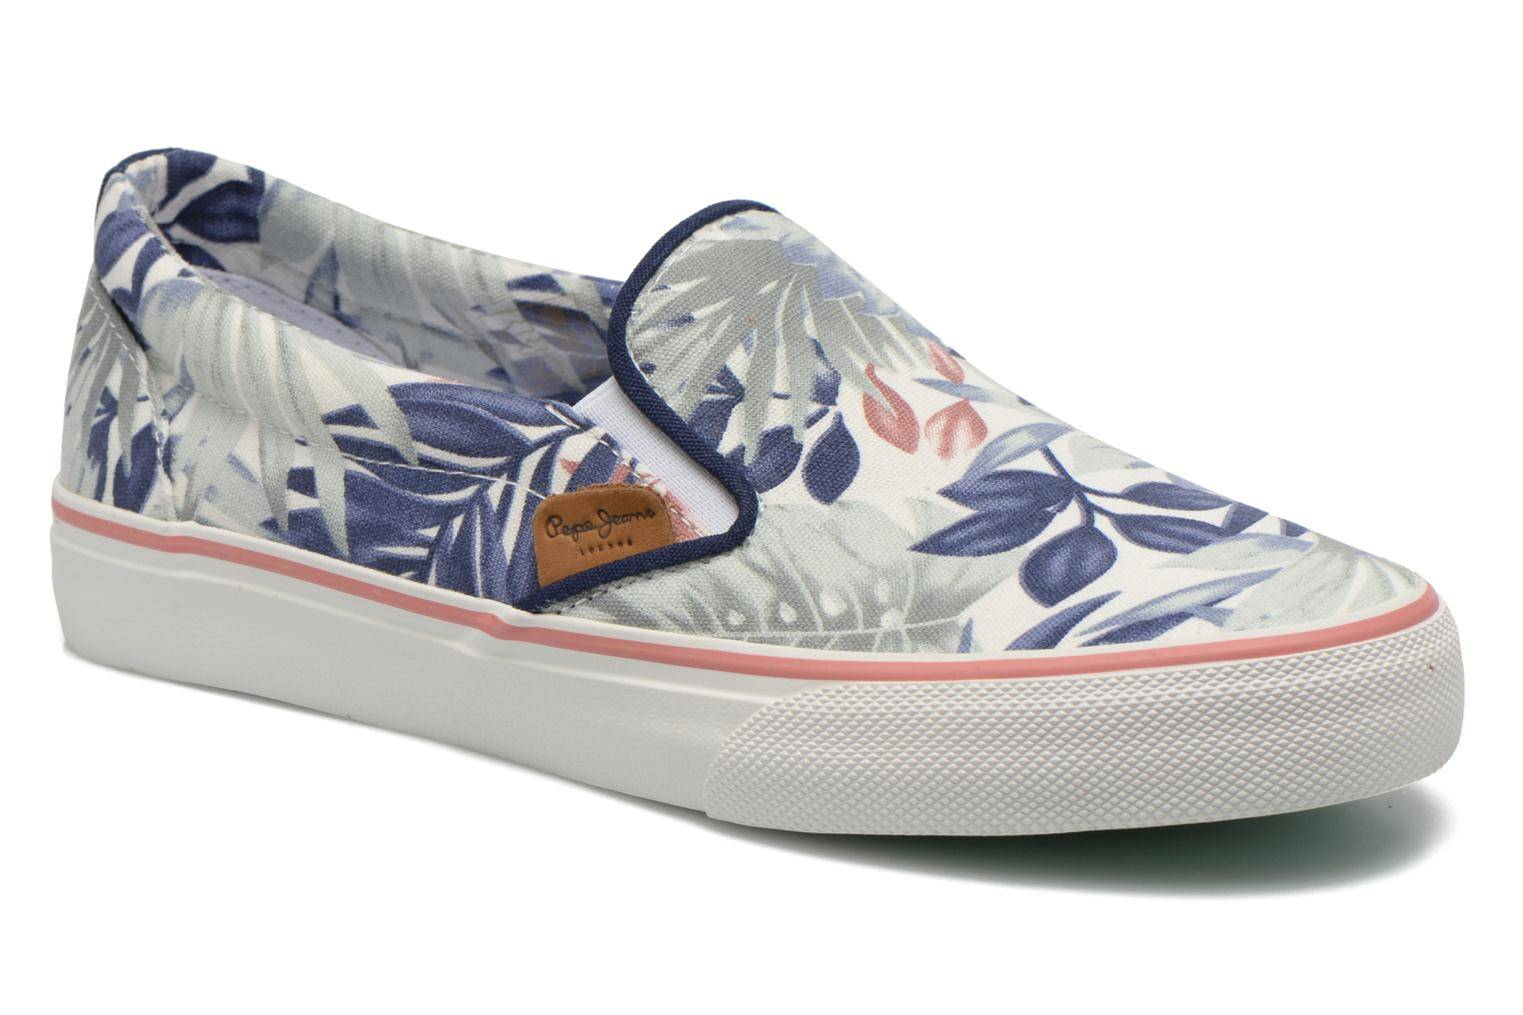 Pepe jeans - Alford Jungle by  - Tennarit Naisille  / Monivärinen